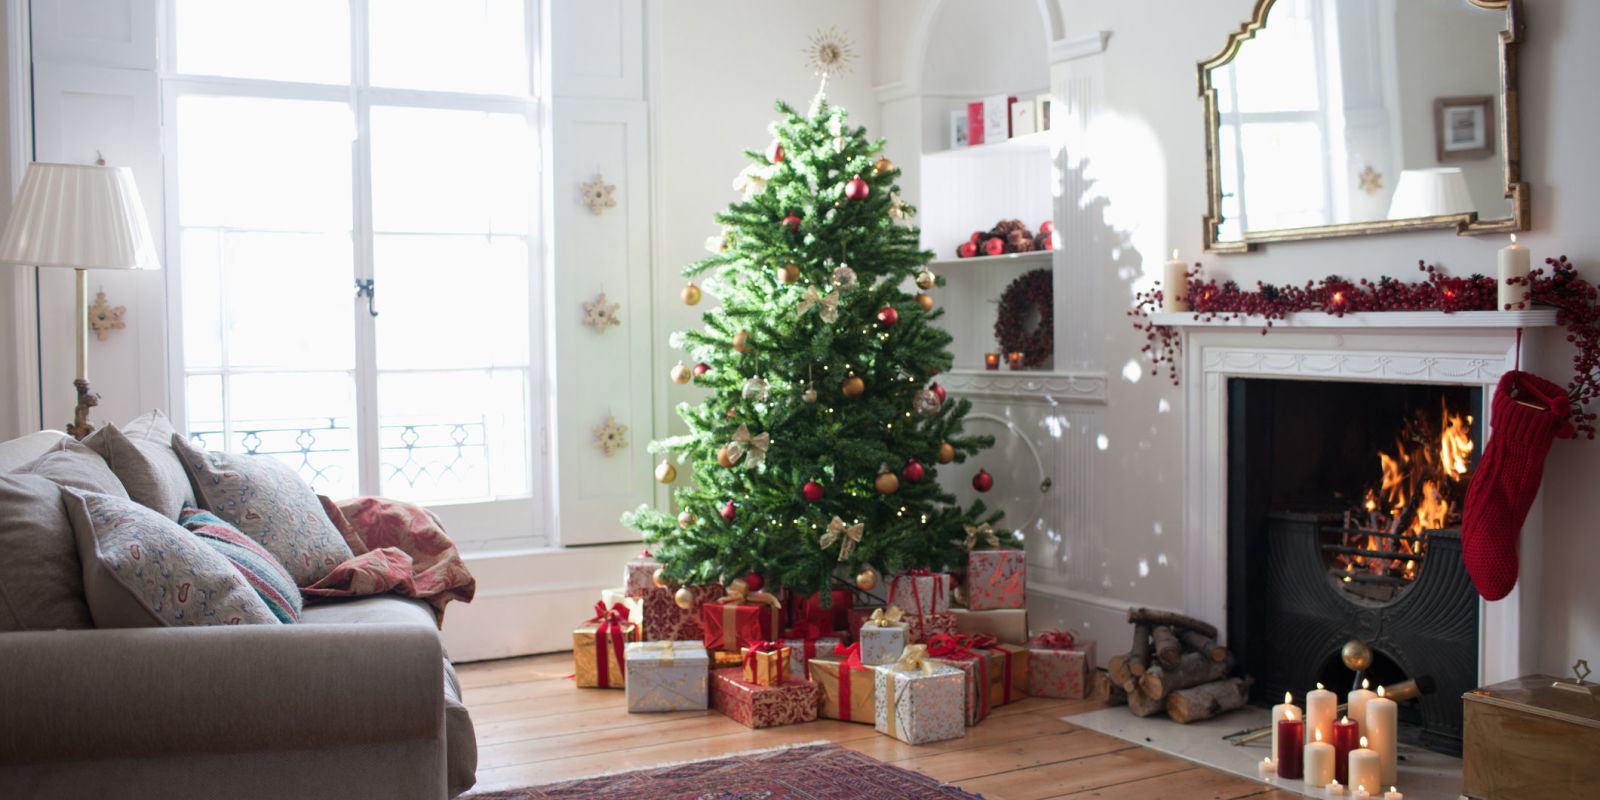 7 Ways To Get Your Home Sparkling Clean This Christmas